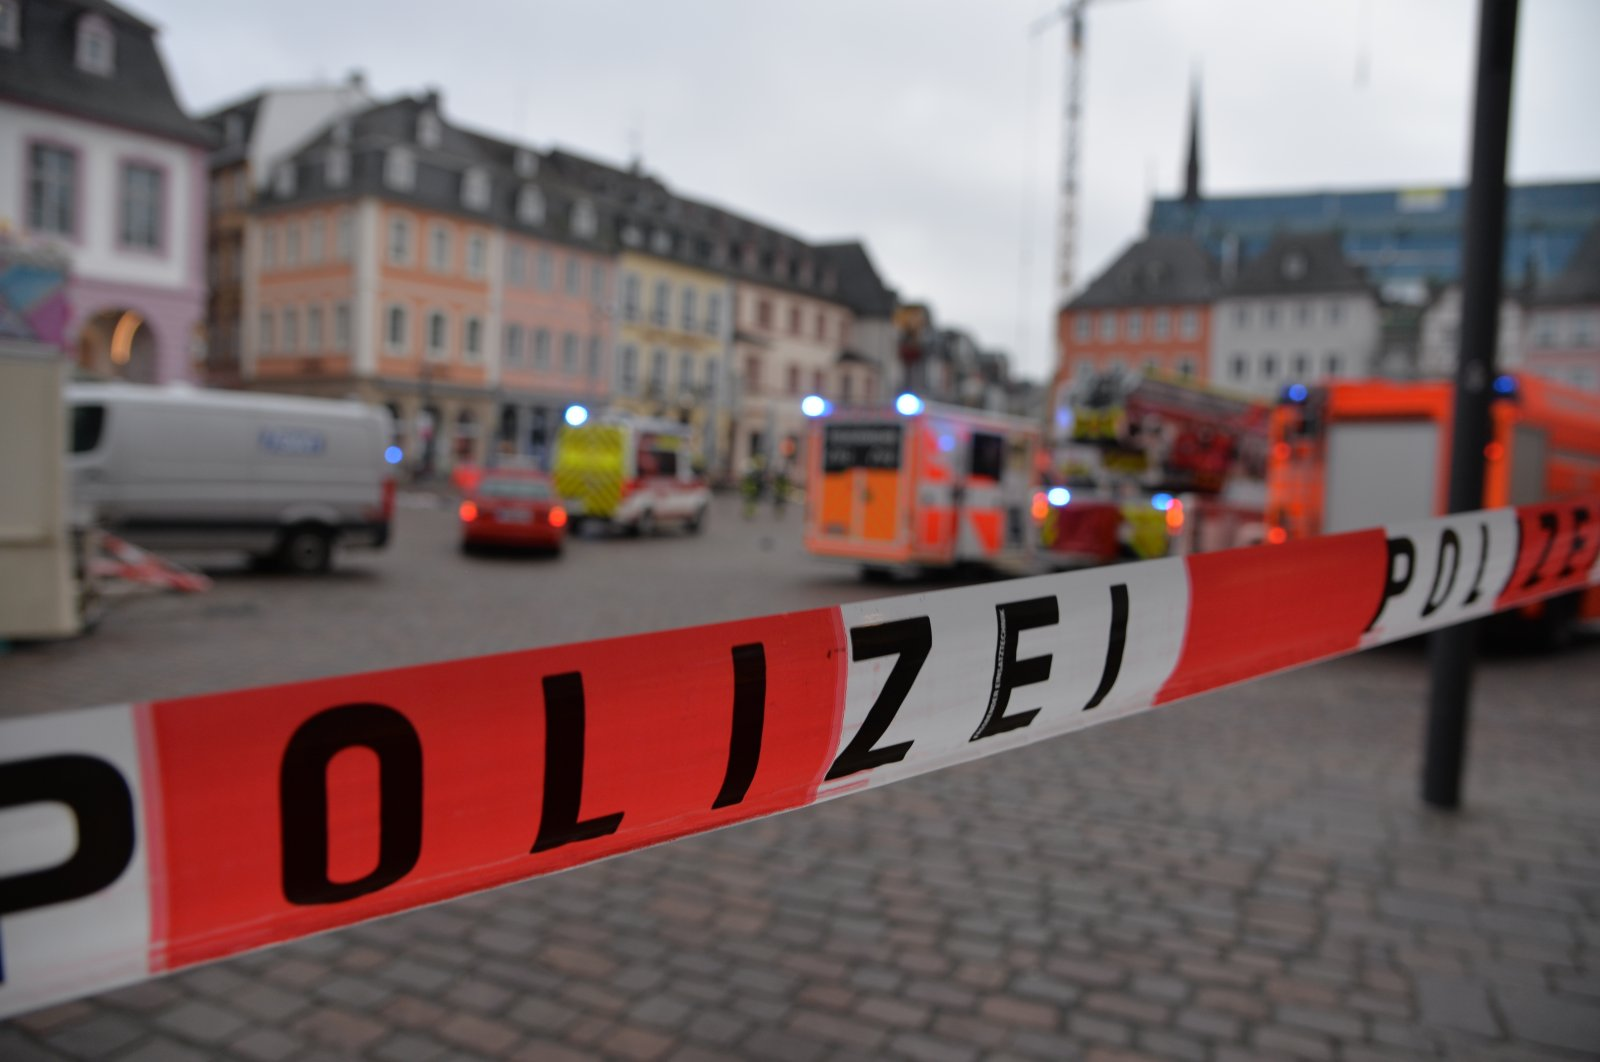 A square is blocked by the police in Trier, Germany, Dec. 1, 2020. (AP Photo)